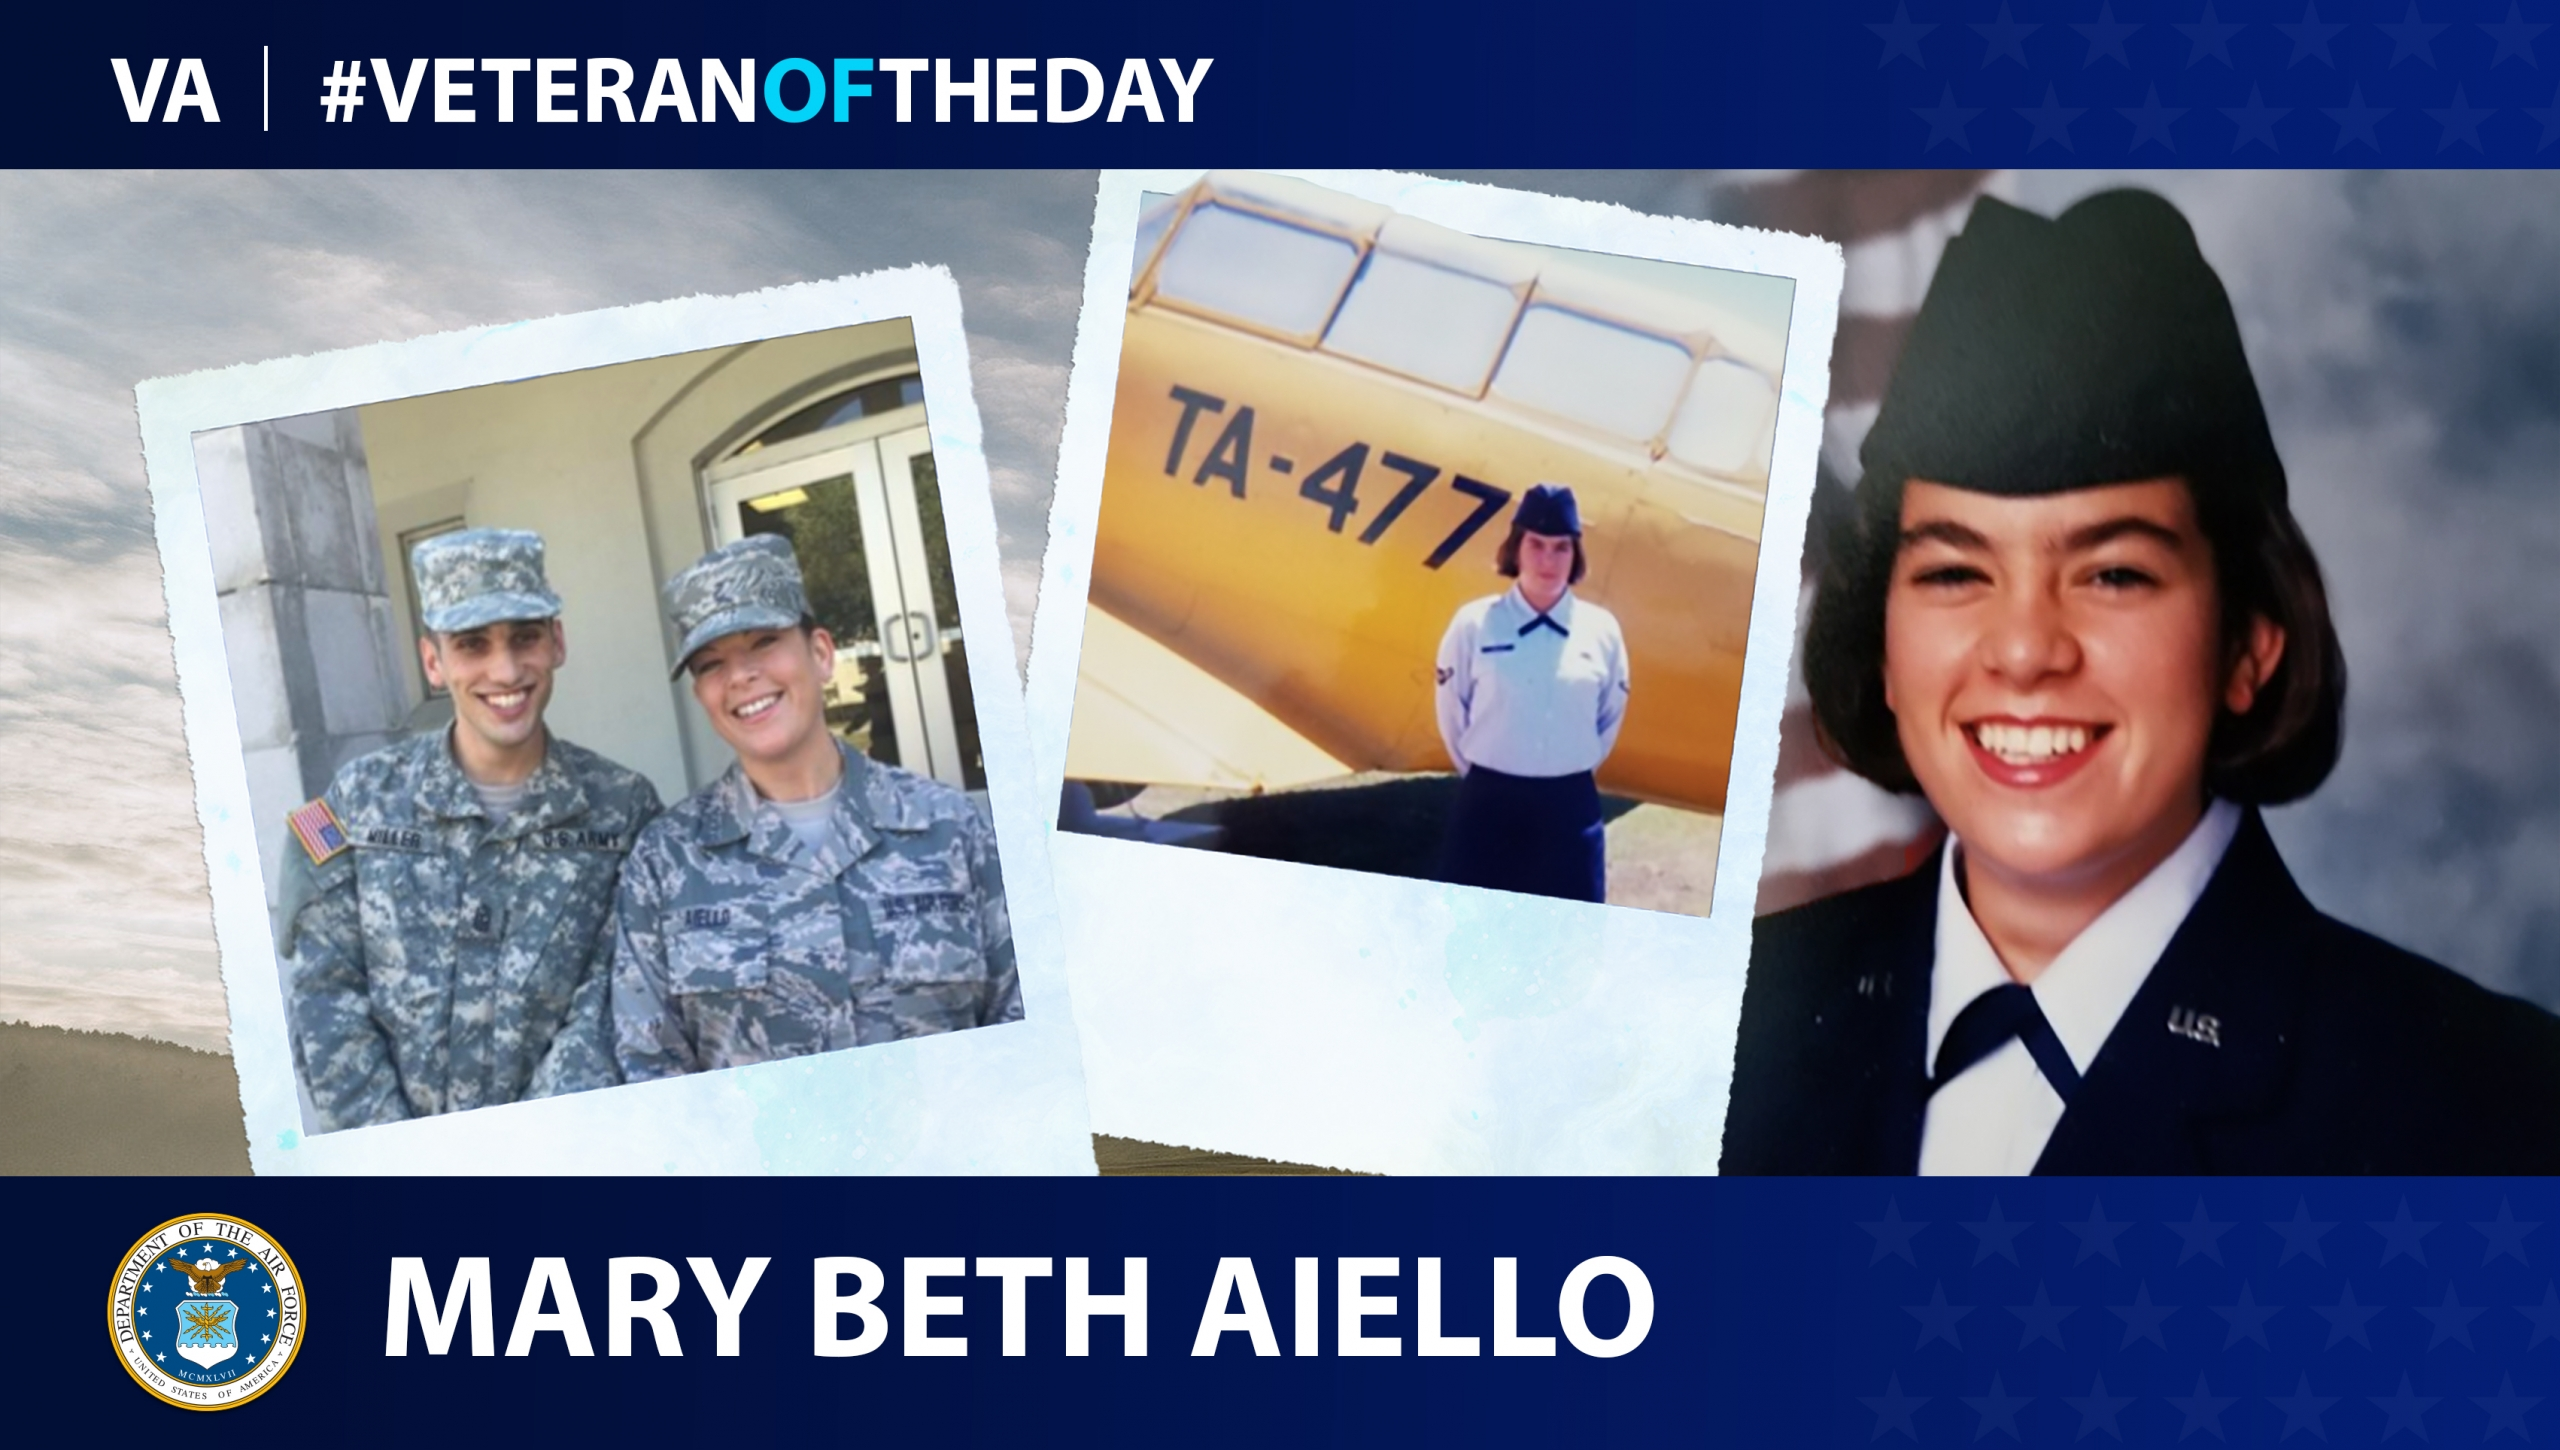 Air Force Veteran Mary Beth Aiello is today's #VeteranOfTheDay.